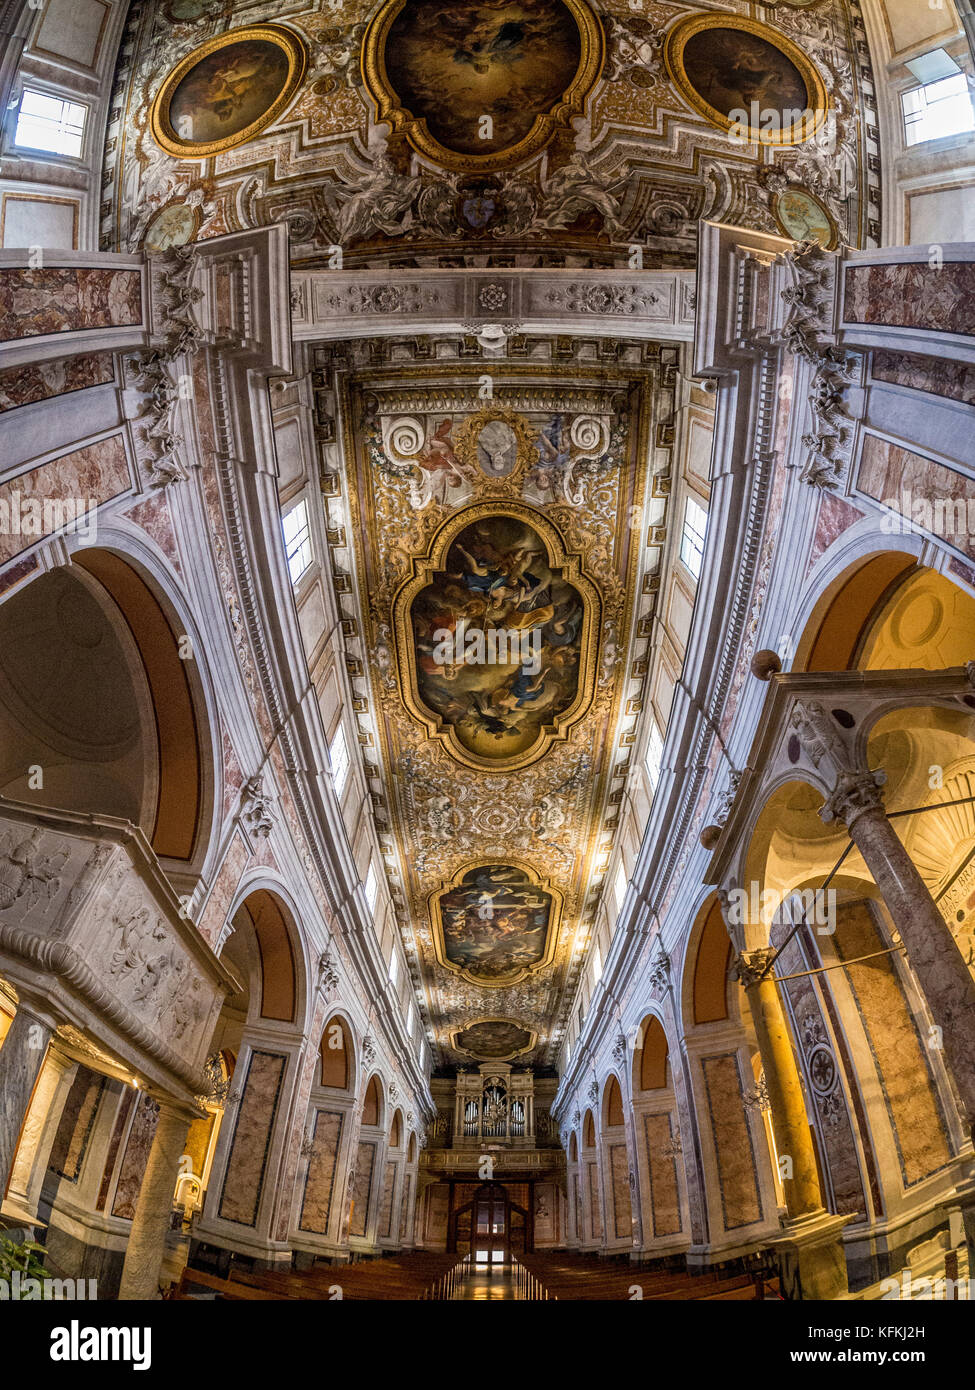 Fisheye shot of the aisle and ceiling of Sorrento Cathedral, Sorrento, Italy. - Stock Image